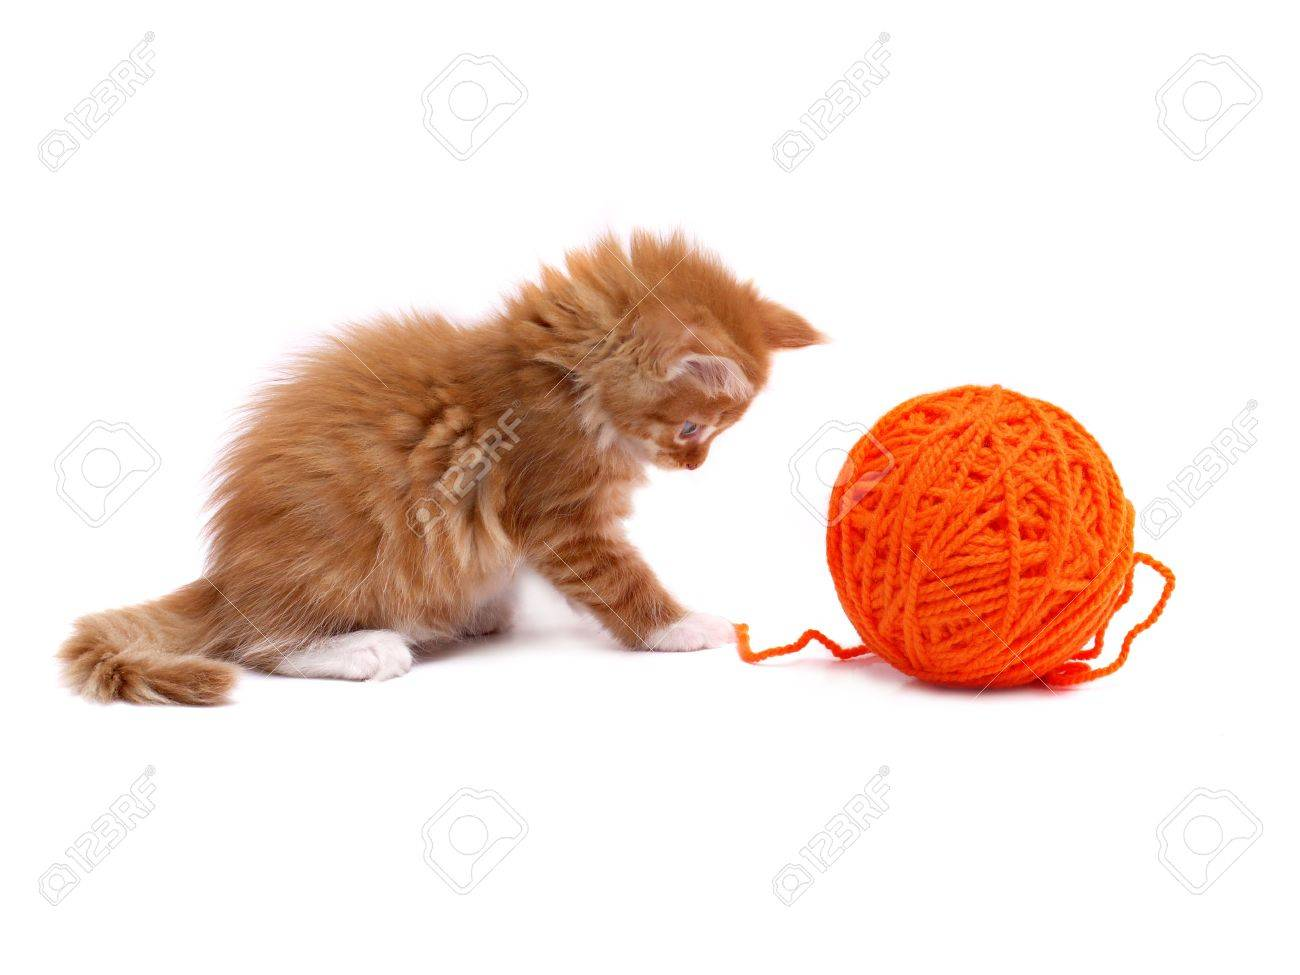 Kitten playing with orange ball of wool shot over white background Stock Photo - 4894342